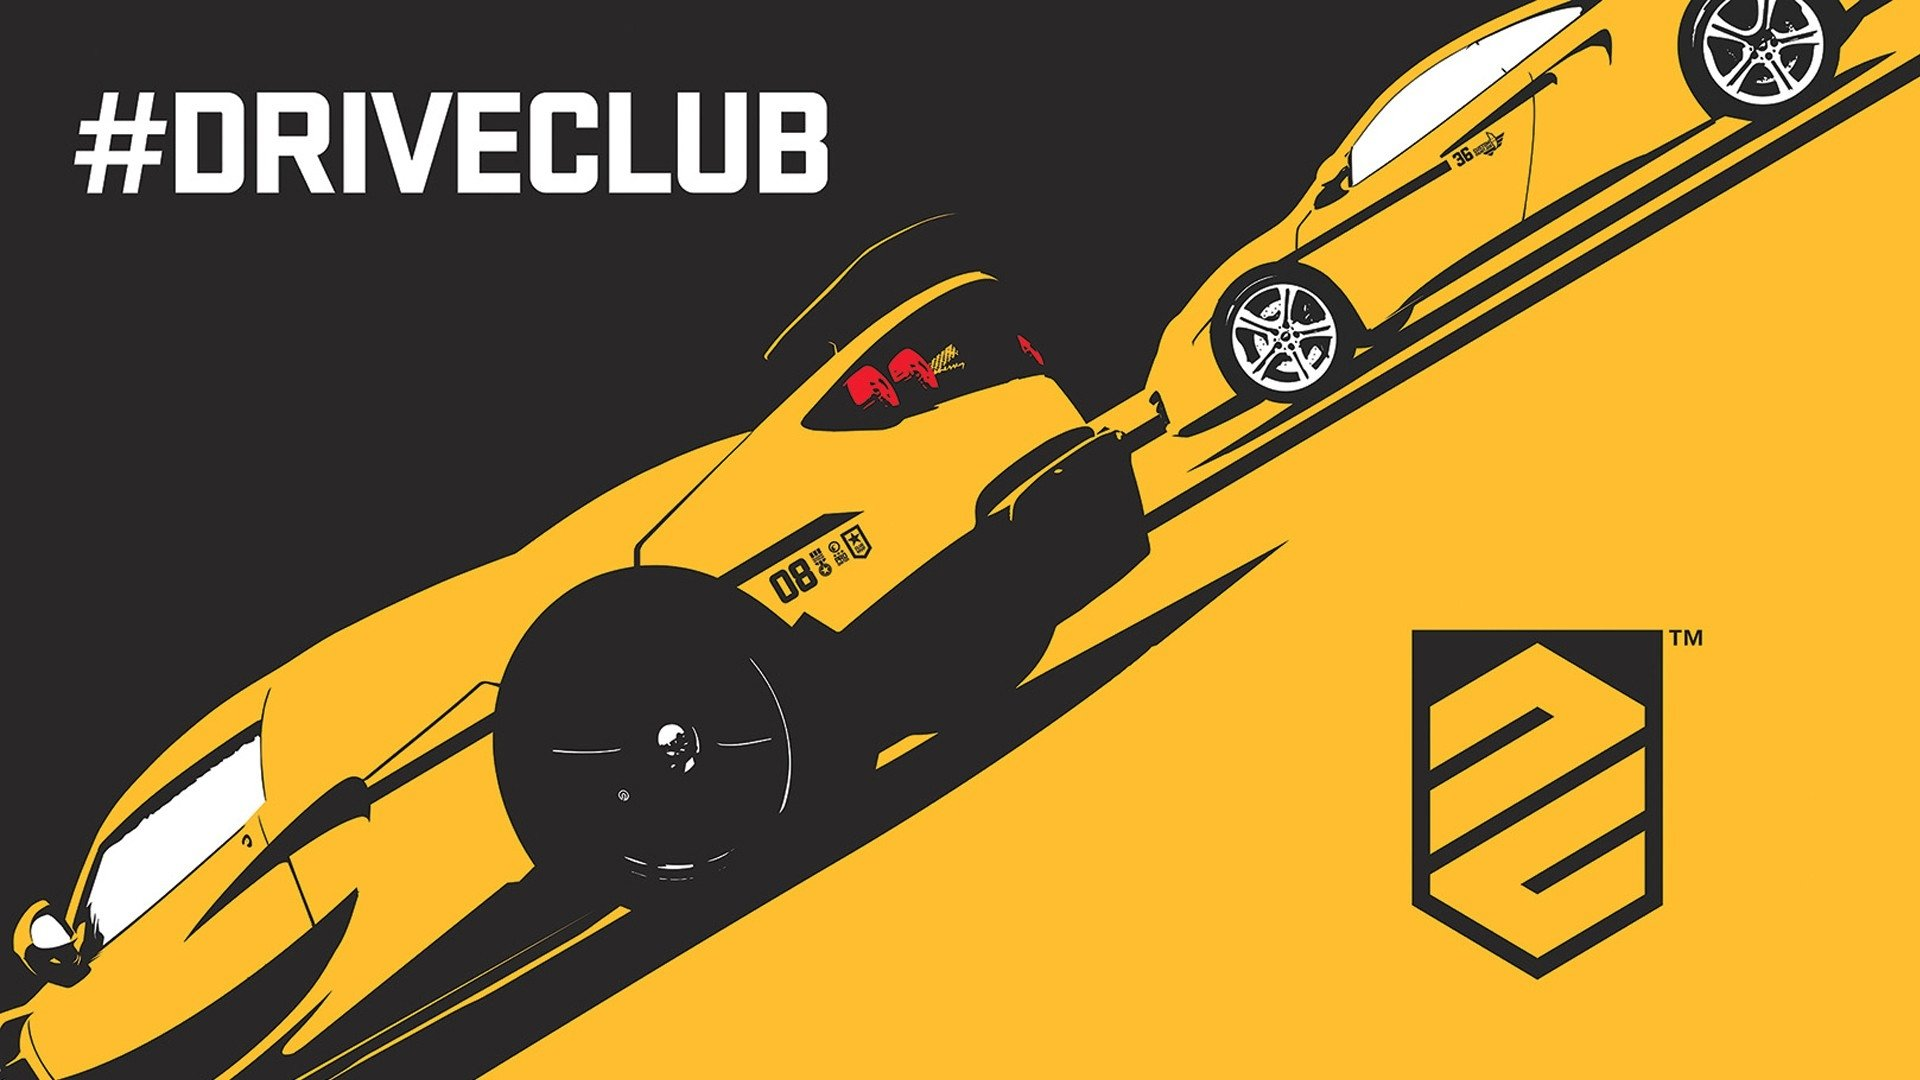 DRIVECLUB PC